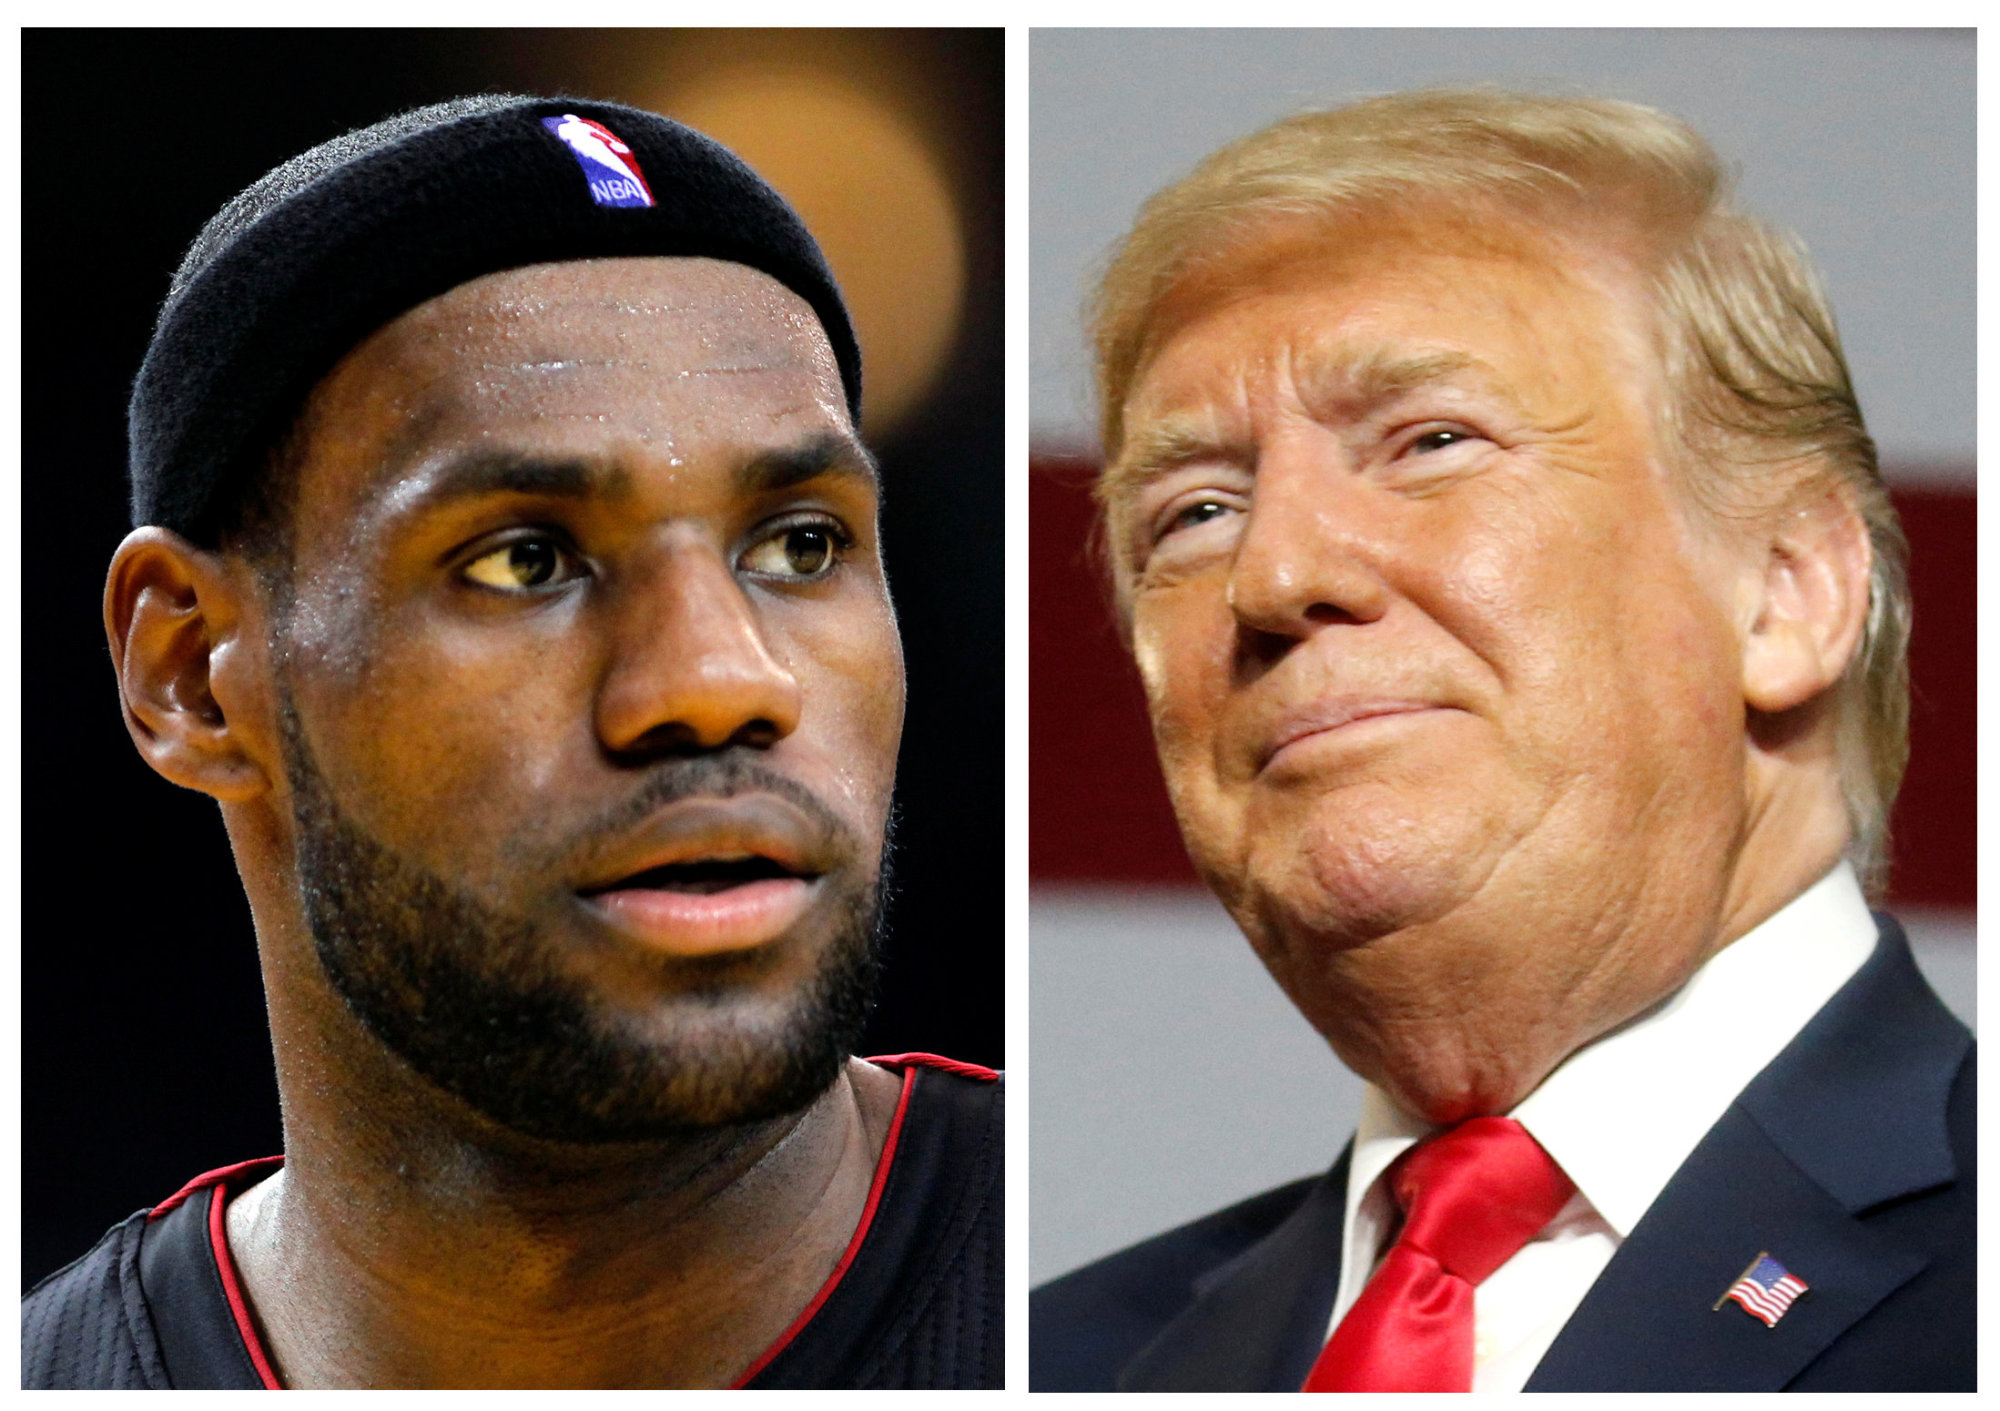 NBA basketball player LeBron James (left) is seen in Oakland, California, in 2013 and U.S. President Donald Trump in Lewis Center, Ohio, Saturday. | REUTERS